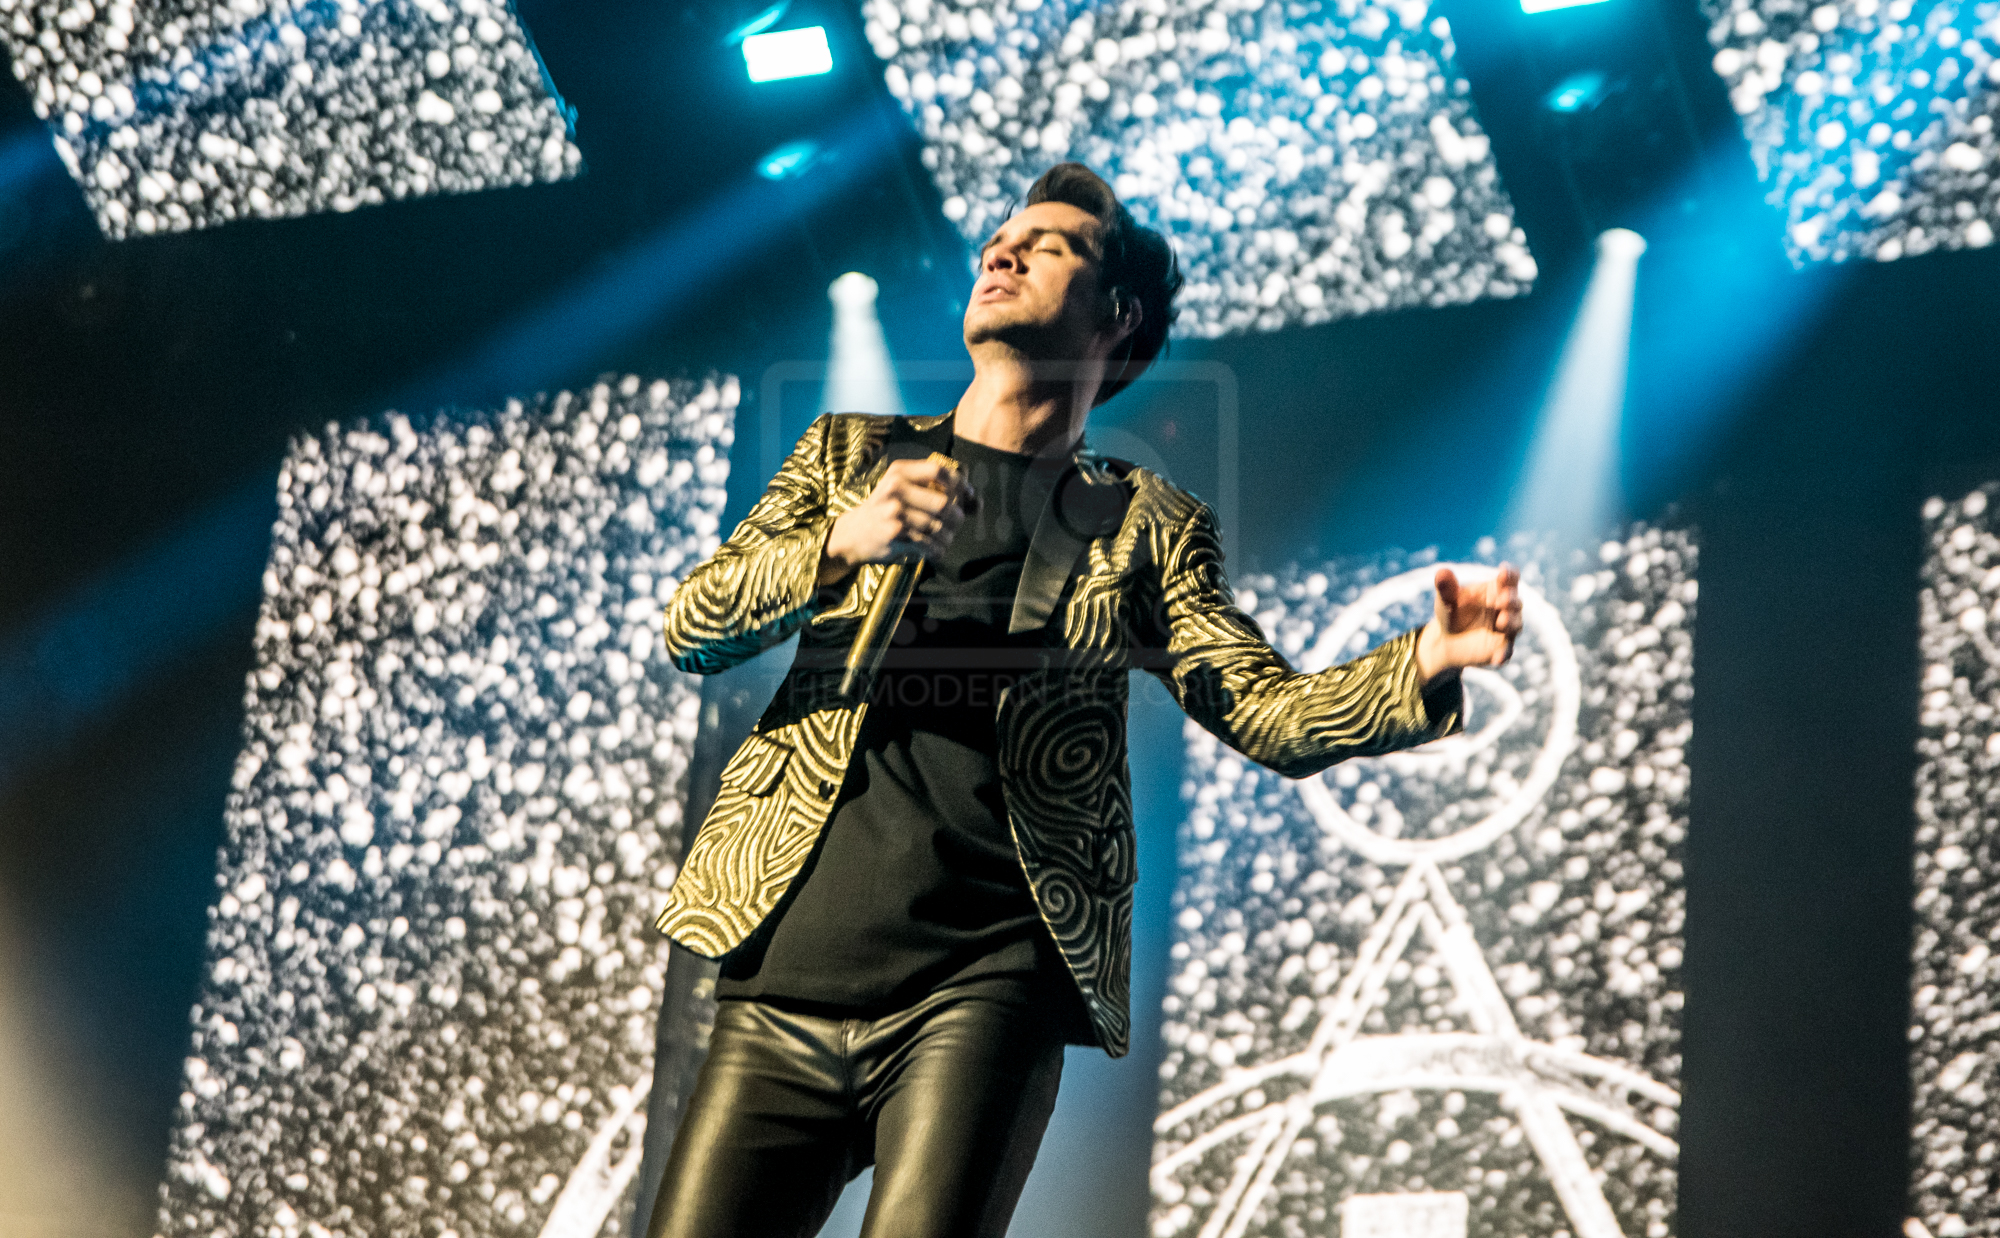 PANIC! AT THE DISCO KICKING OFF THEIR UK ARENA TOUR AT GLASGOW'S SSE HYDRO - 24.03.2019  PICTURE BY: STEPHEN WILSON PHOTOGRAPHY